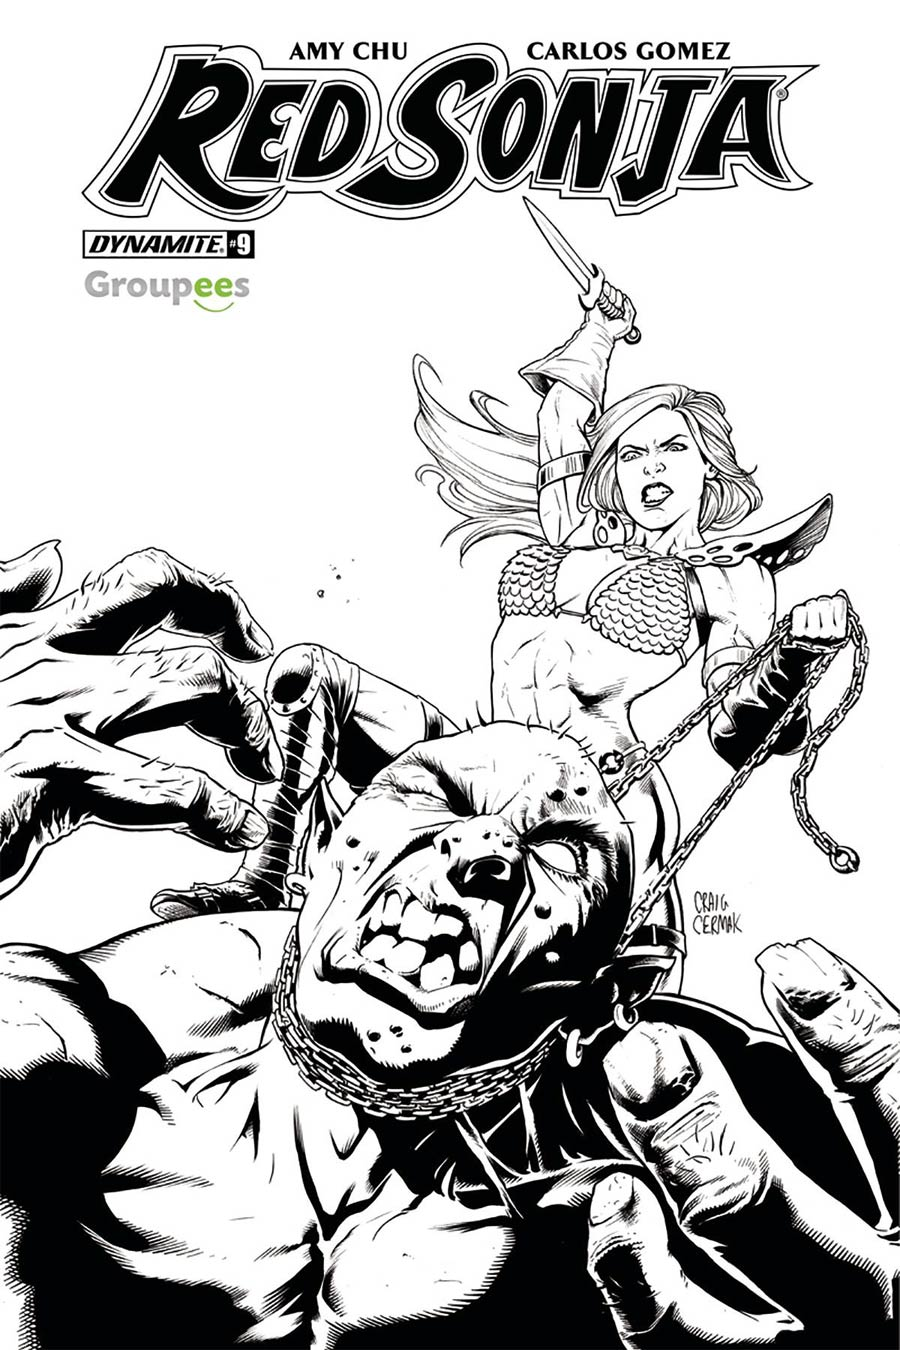 Red Sonja Vol 7 #9 Cover J Groupees Exclusive Craig Cermak Black & White Variant Cover